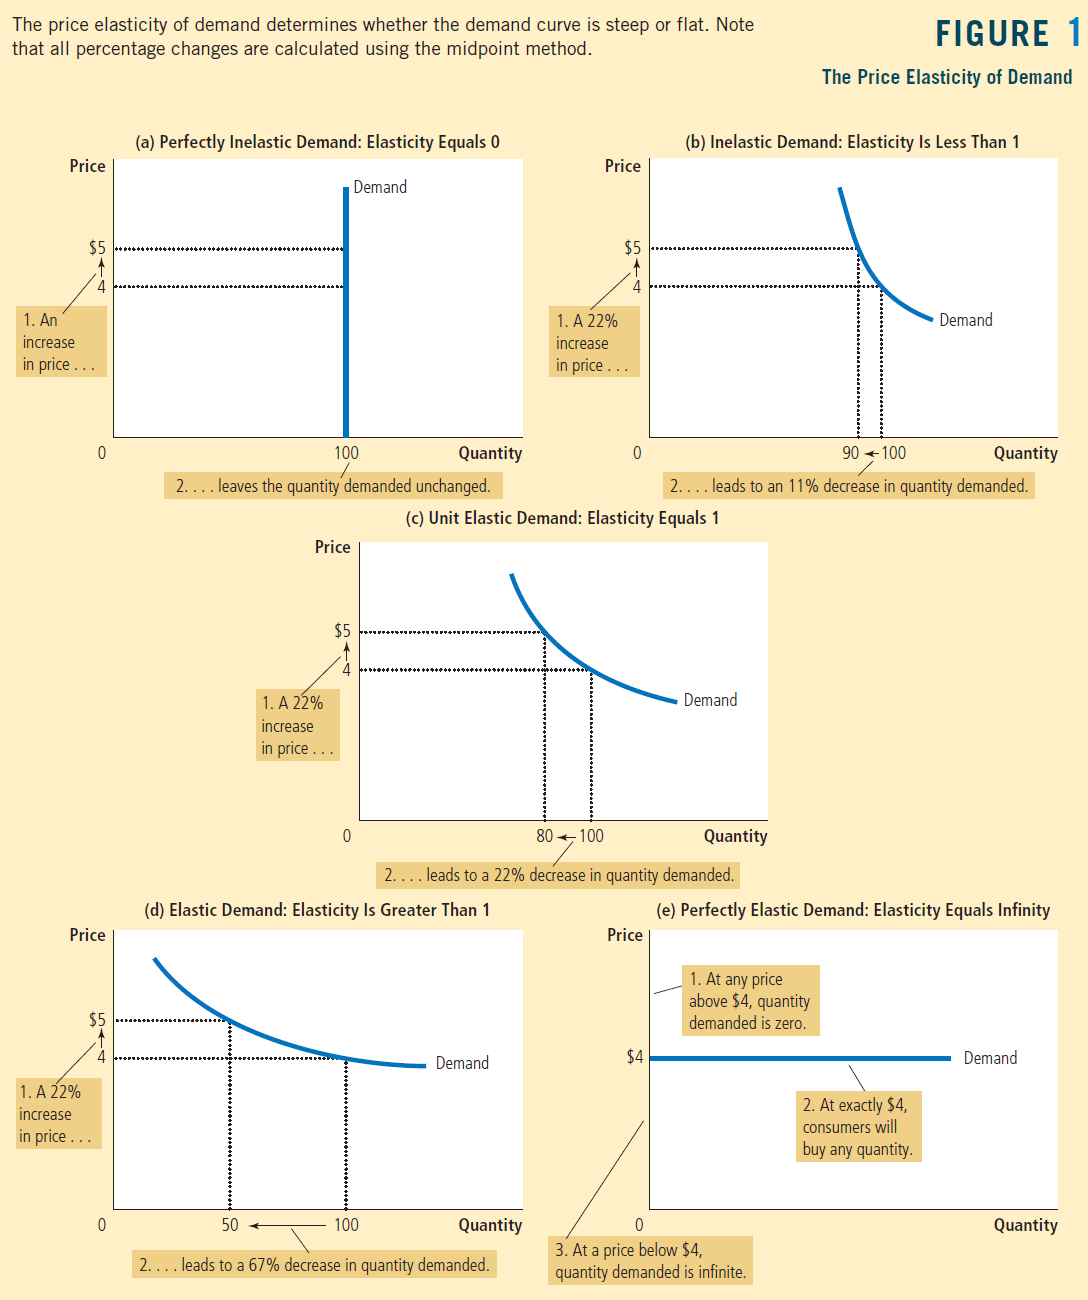 The price elasticity of demand determines whether the demand curve is steep or flat. Note that all percentage changes are calculated using the midpoint method 2.... 2.. 2.. 1 FIGURE The Price Elasticity of Demand (a) Perfectly Inelastic Demand: Elasticity Equals 0 (b) Inelastic Demand: Elasticity Is Less Than 1 Price $5 4 1. An Increase n price . 0 Price $5 4 Increase •n price 0 Demand IOO Price $5 4 Increase In pnce . Quantity 90 IOO Demand Quantity leaves the quantity demanded unchanged. .. leads to an 11% decrease in quantity demanded. (c) Unit Elastic Demand: Elasticity Equals 1 Price $5 4 Increase In price 0 IOO Demand Quantity .. leads to a 22% decrease in quantity demanded. 2.. (d) Elastic Demand: Elasticity Is Greater Than 1 50 IOO Demand Quantity Price $4 0 (e) Perfectly Elastic Demand: Elasticity Equals Infinity . At any price above $4, quantity manded is zero. Demand . At exactly $4, consumers will buy any quantity. Quantity .. leads to a 67% decrease in quantity demanded. 3. At a price below $4, quantity demanded is infinite.